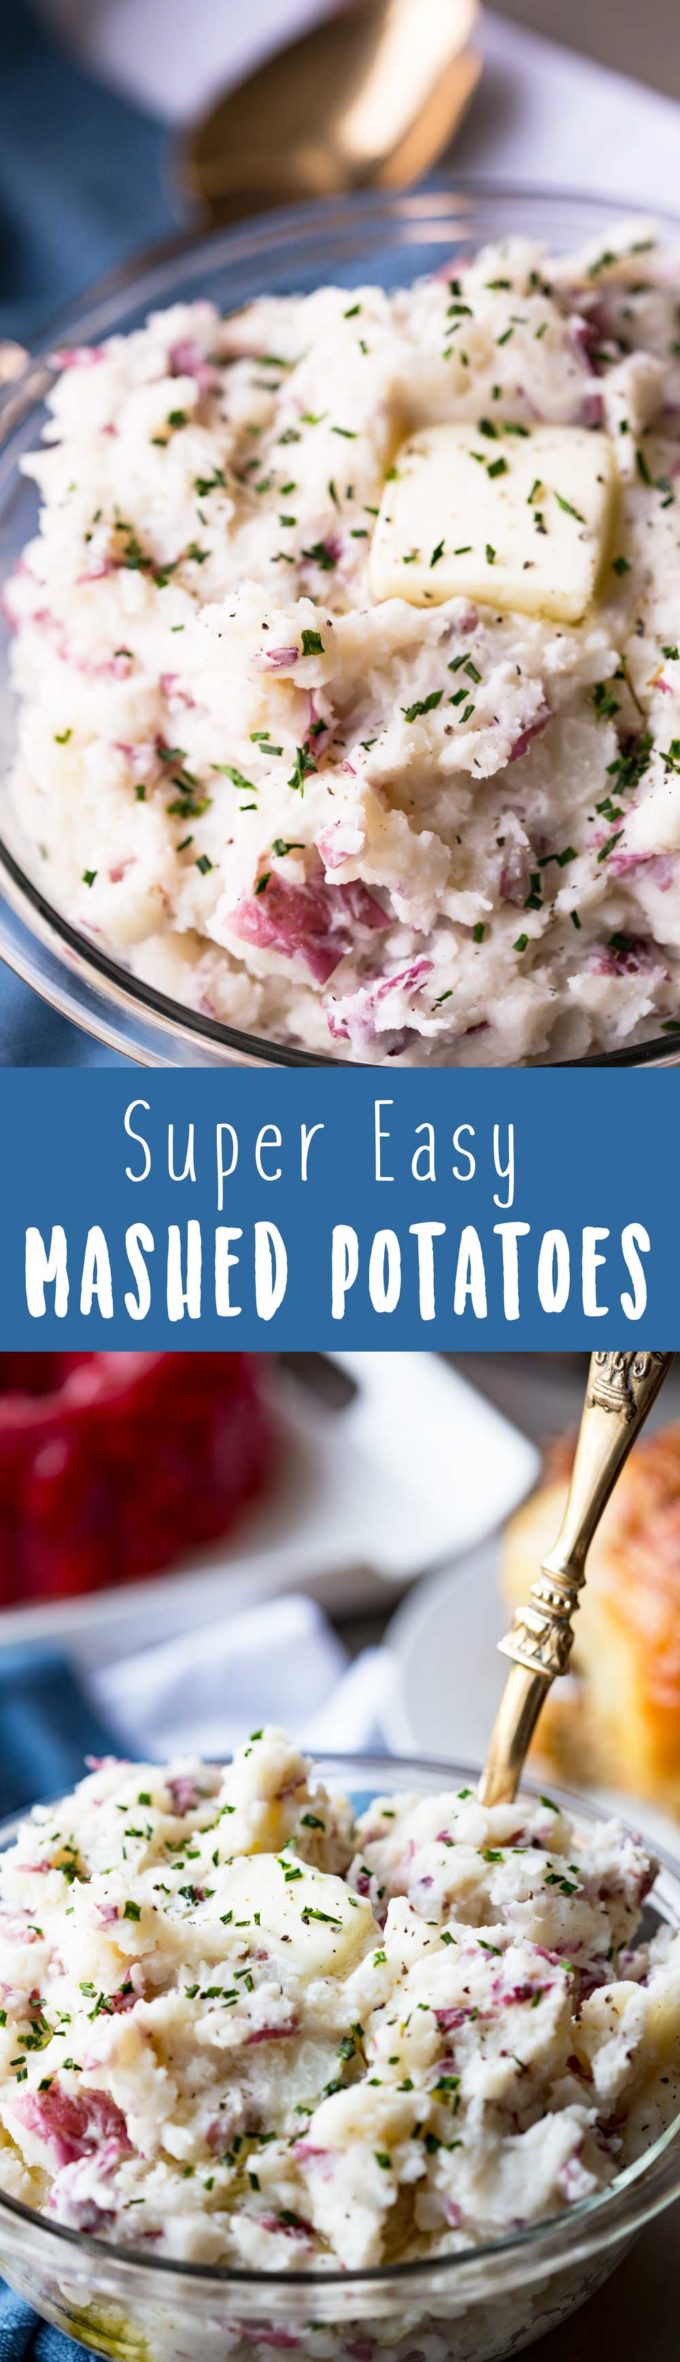 Super Easy Mashed Potatoes are rich, fluffy, buttery, and the perfect addition to your dinner table. And they are fluffy deliciousness rather than potato paste.